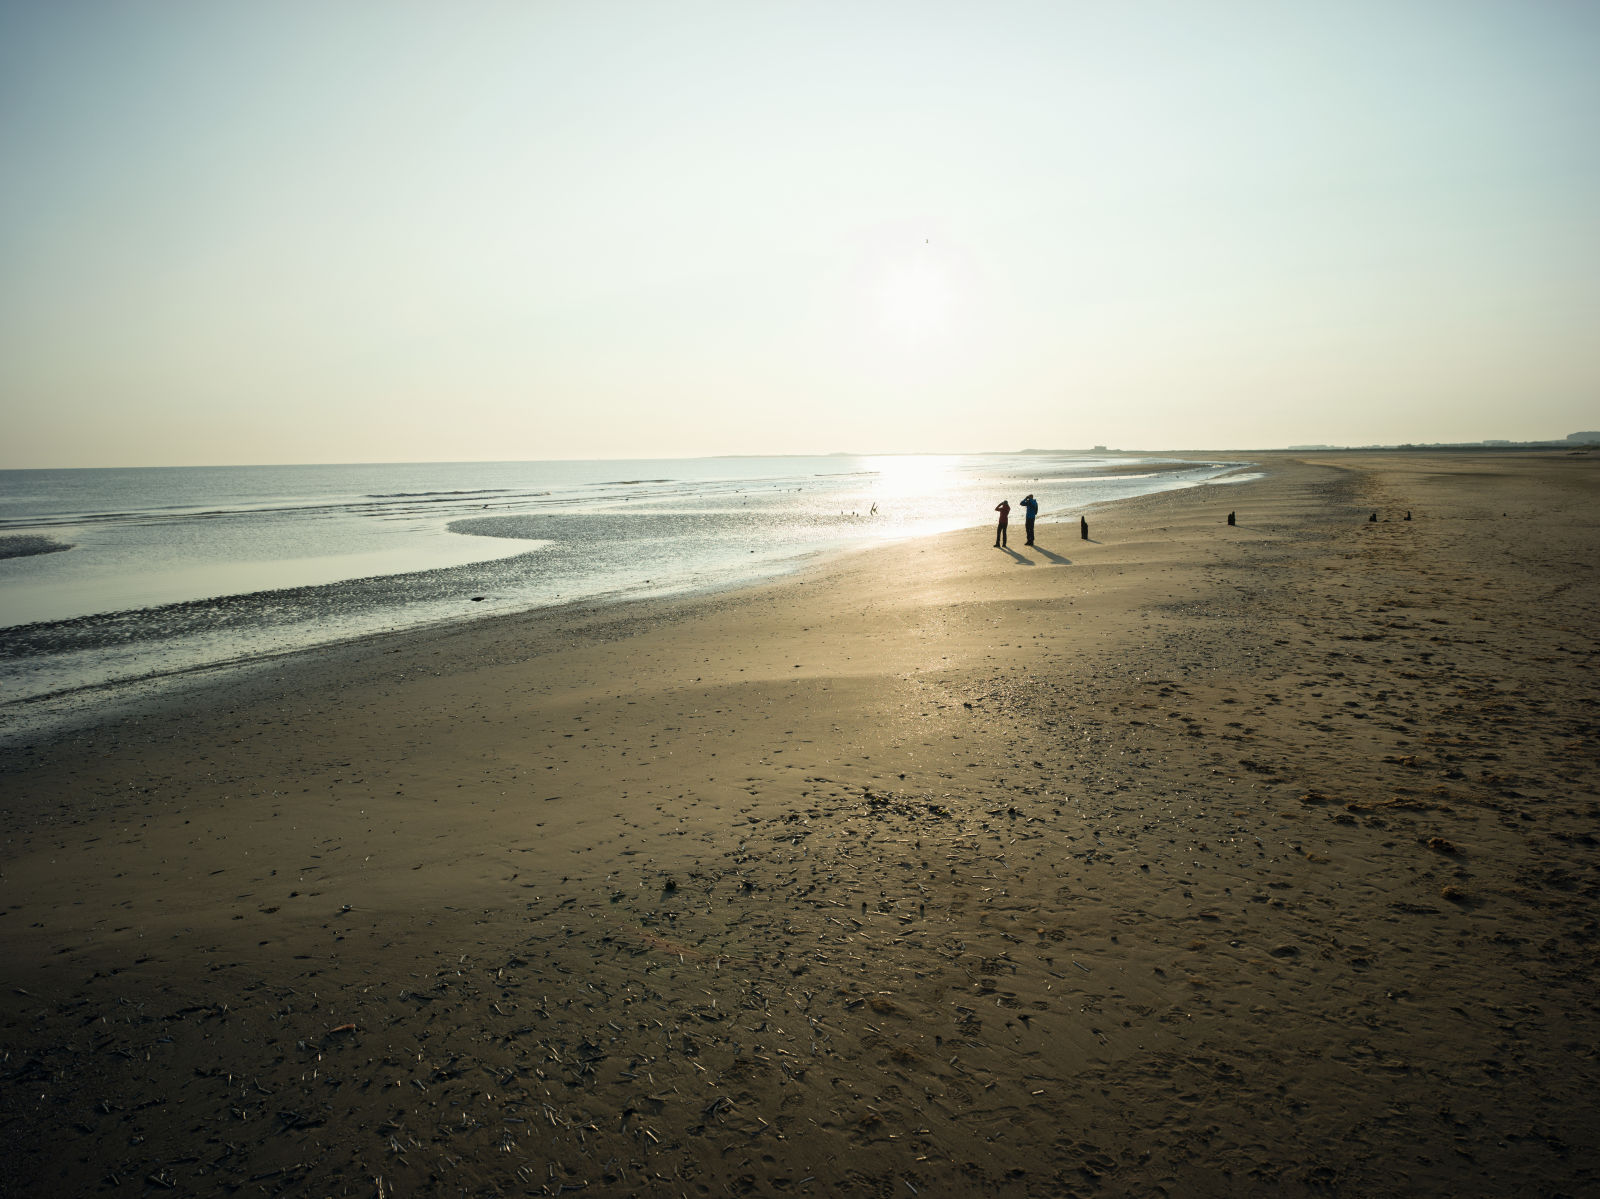 Beach with two people walking very far away, England